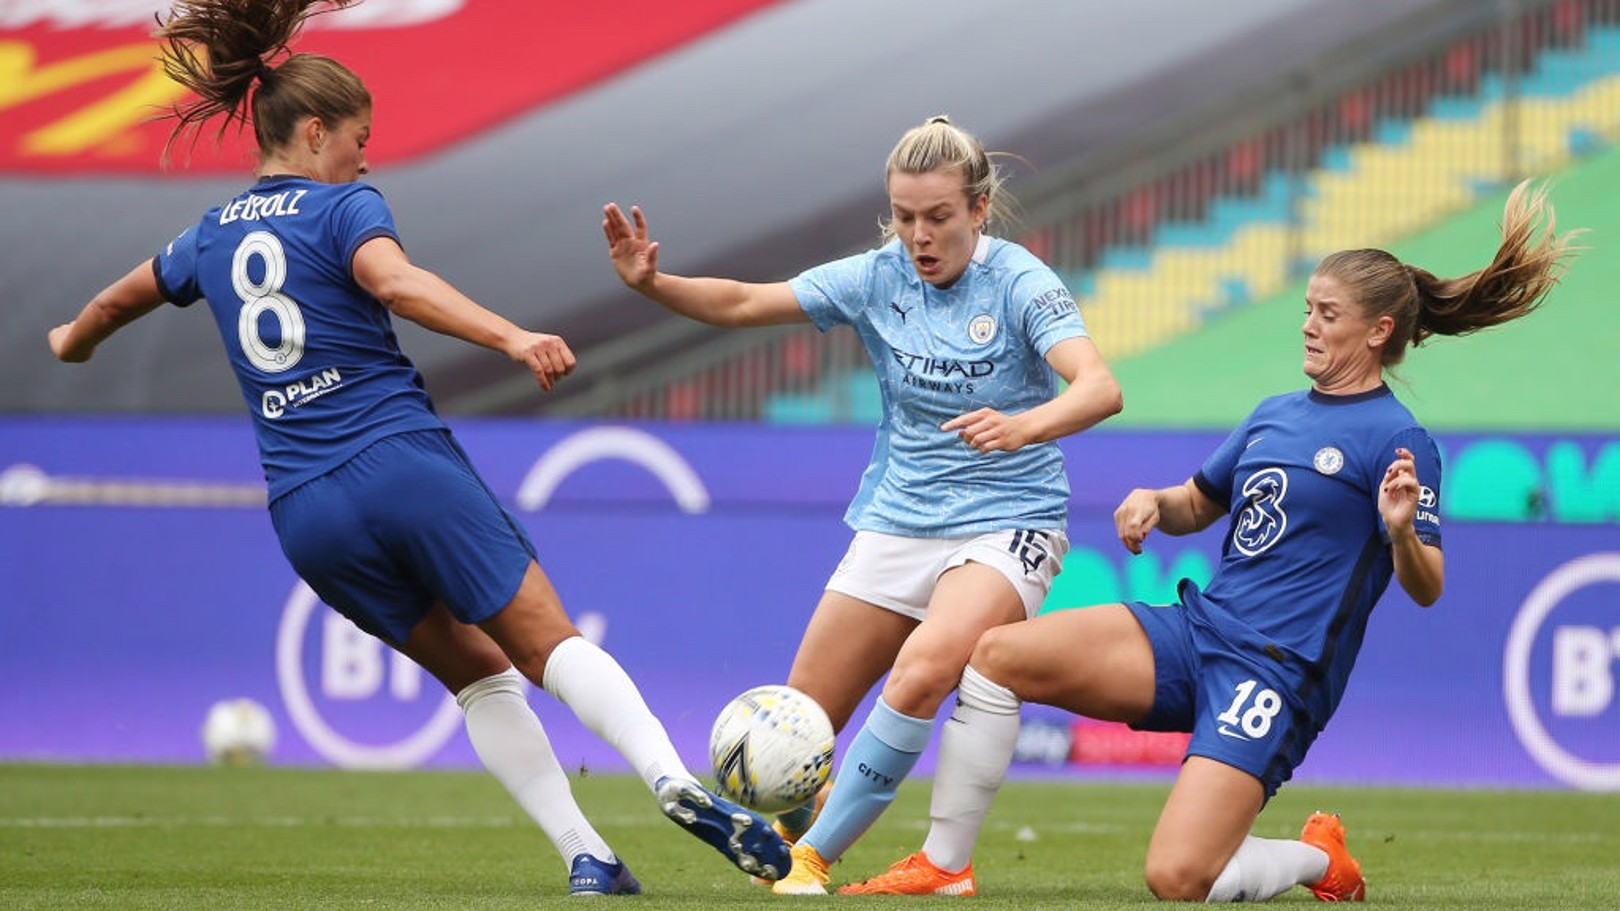 BATTLE: Hemp attempts to weave her way beyond two Chelsea players early on.